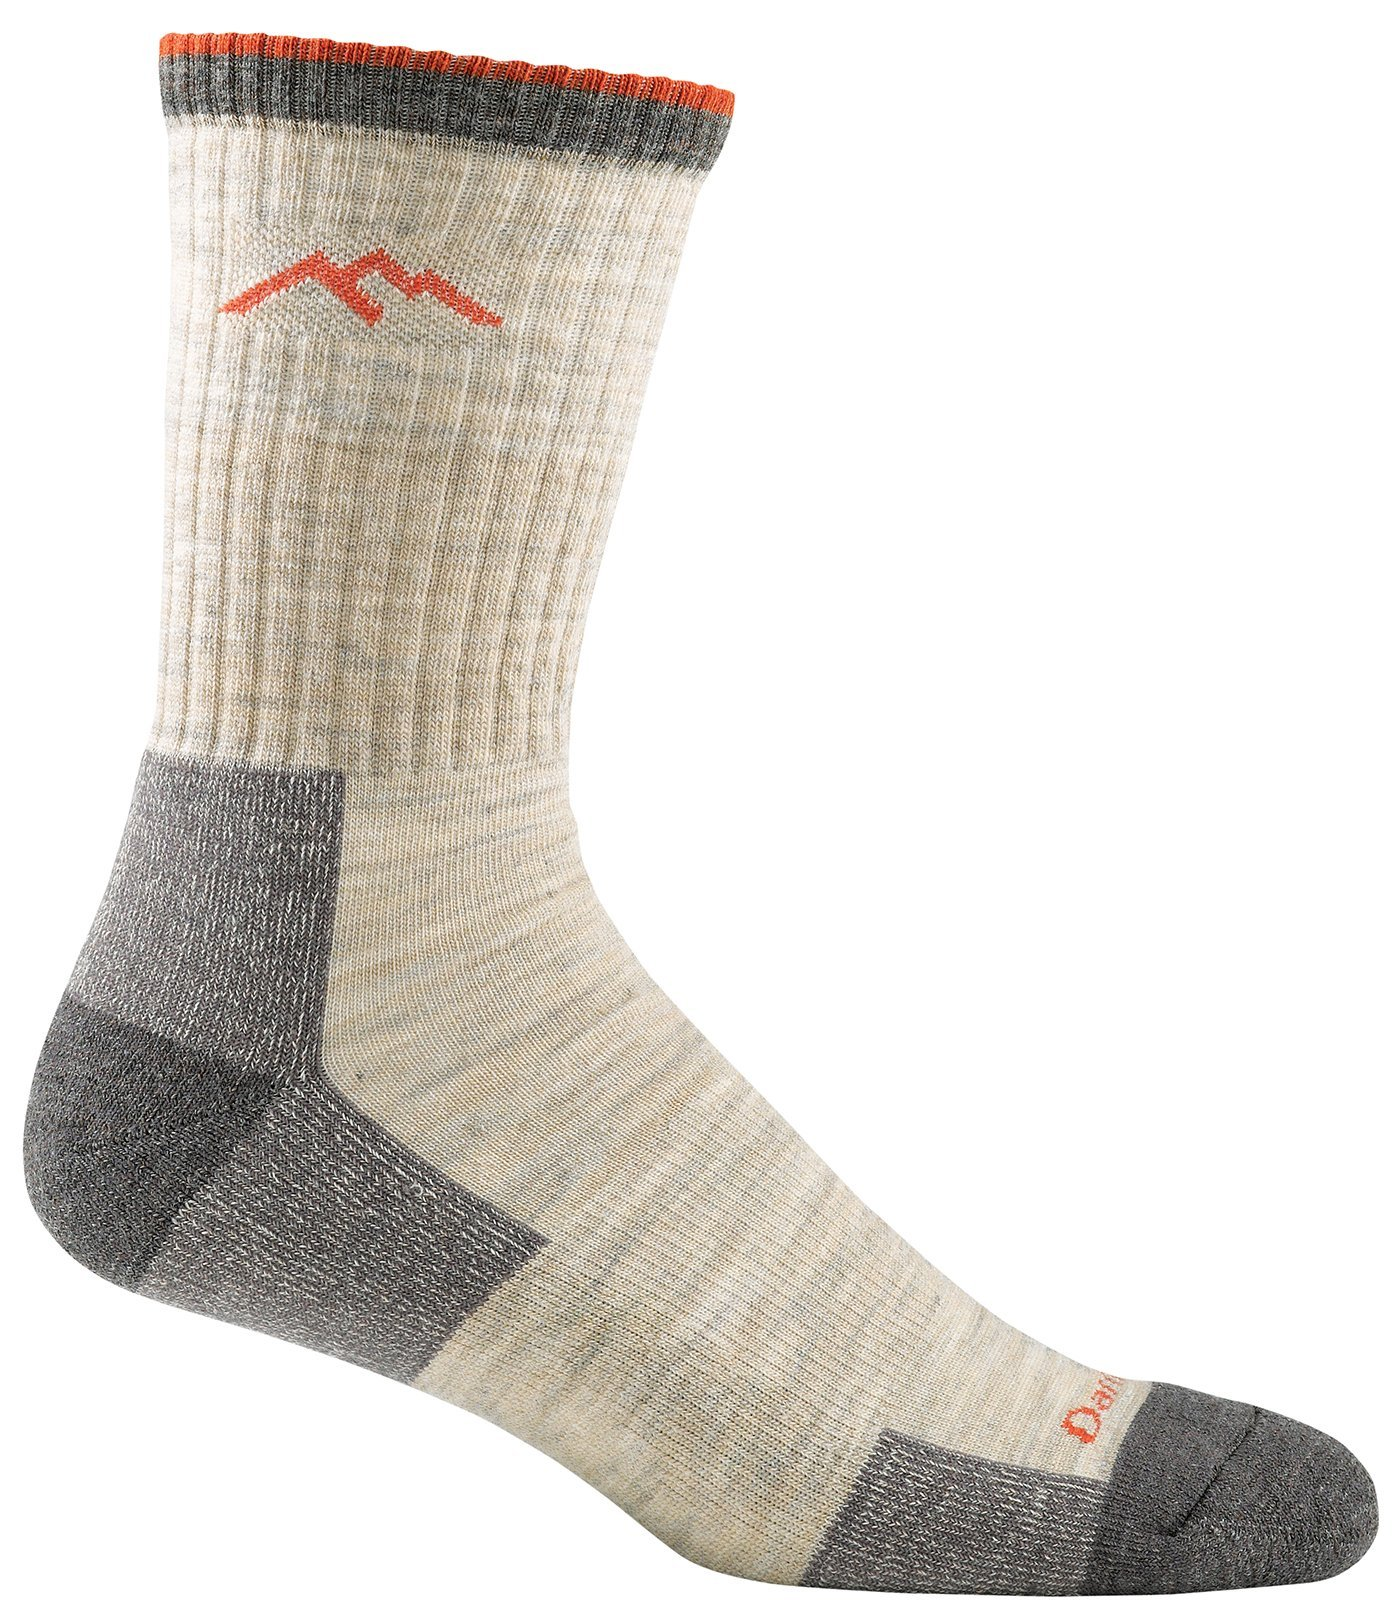 Darn Tough Vermont Men's Merino Wool Micro Crew Cushion Hiking Socks, Oatmeal, Large(10-12)